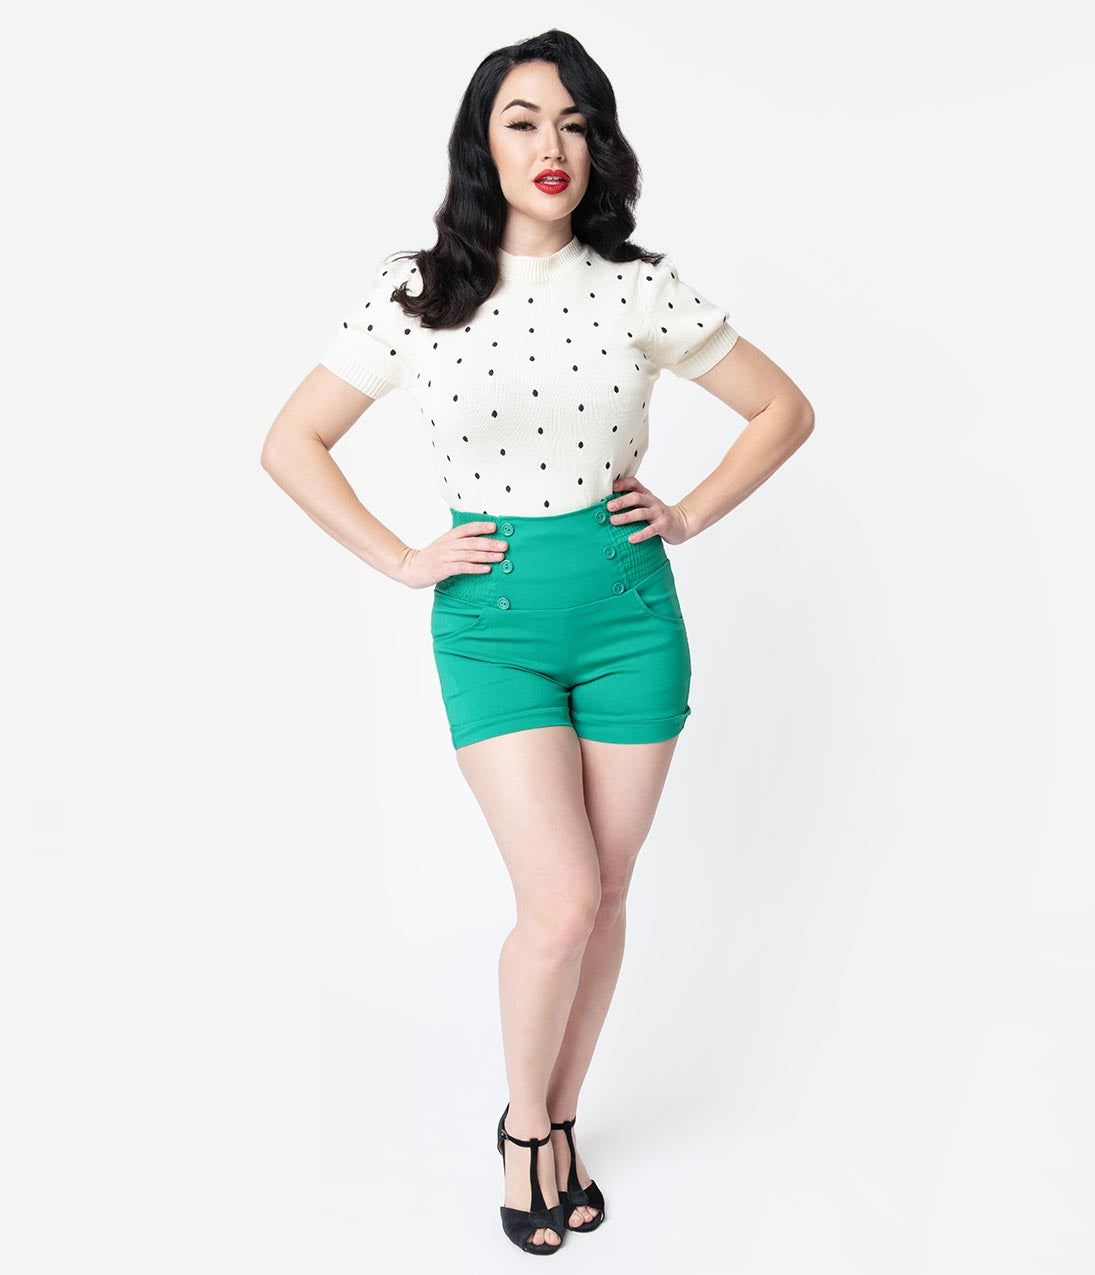 1950s Shorts History | Summer Clothing Retro Style Green High Waist Stretch Sailor Shorts $28.00 AT vintagedancer.com